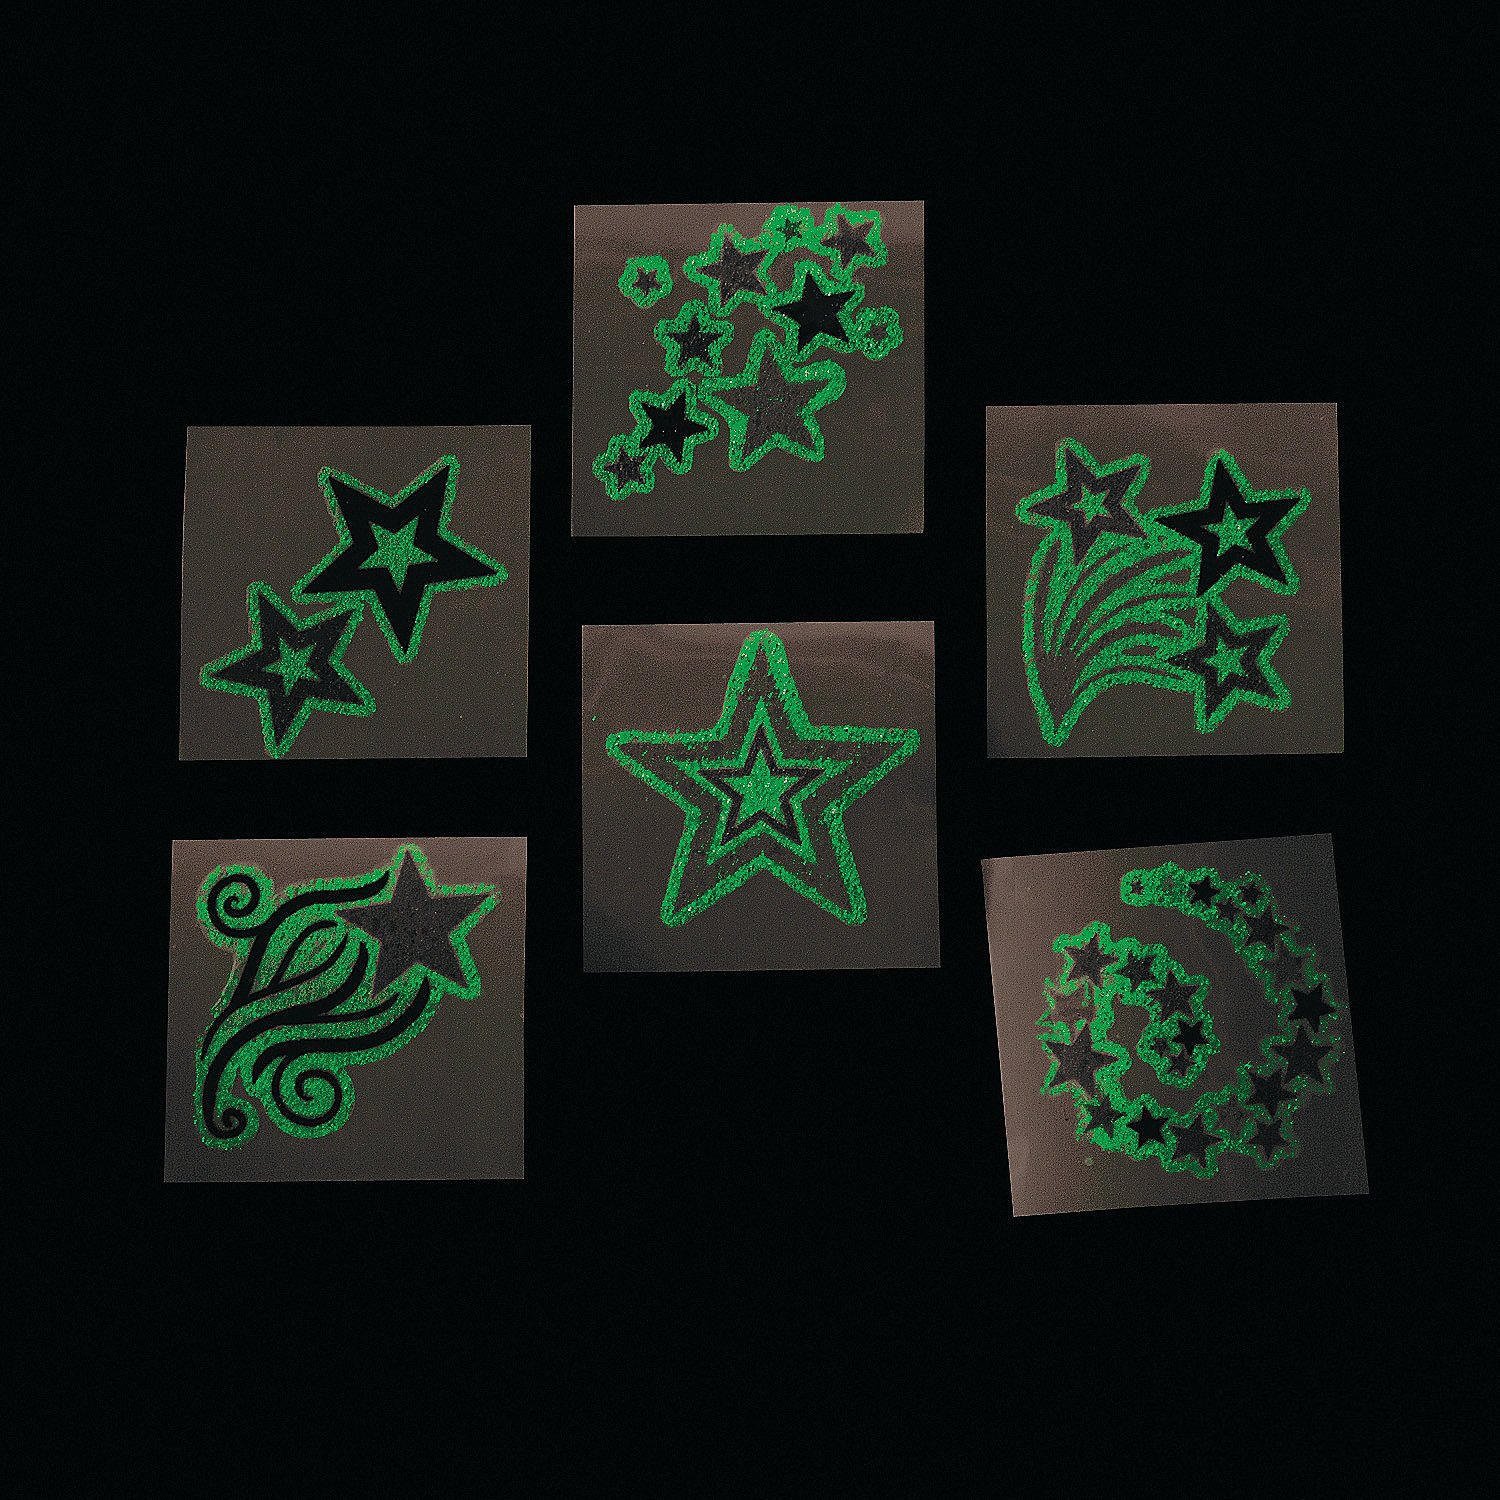 a3378bd27390 Get Quotations · 144 Pack Glow In The Dark Star Temporary Tattoos 1 1 2  Inches